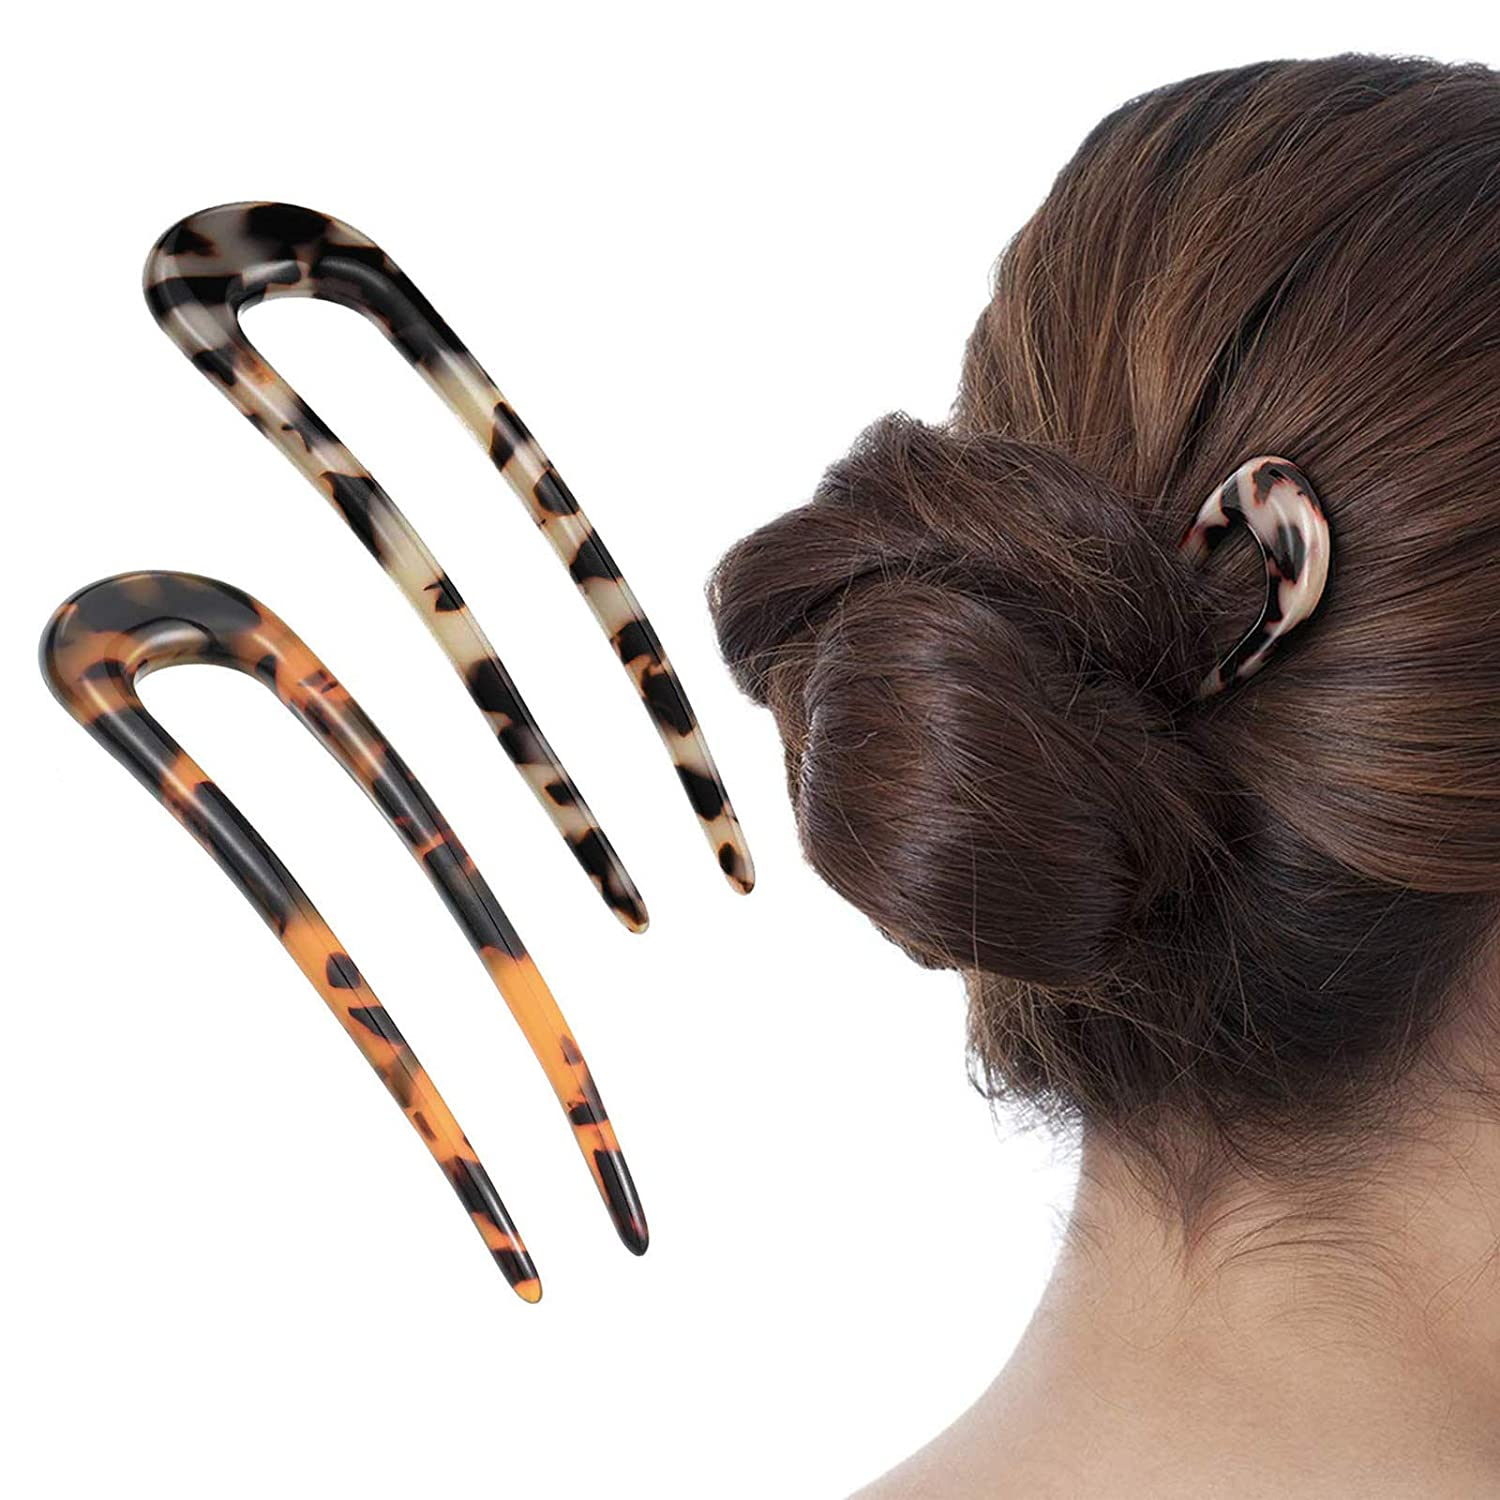 [2 Pack] Benefree French Style Cellulose Acetate Tortoise Shell U Shaped Hair Pins Fork 2 Prong Updo Chignon Pin for Women Girls Hairstyle Accessories(Tortoiseshell and White Tortoiseshell)